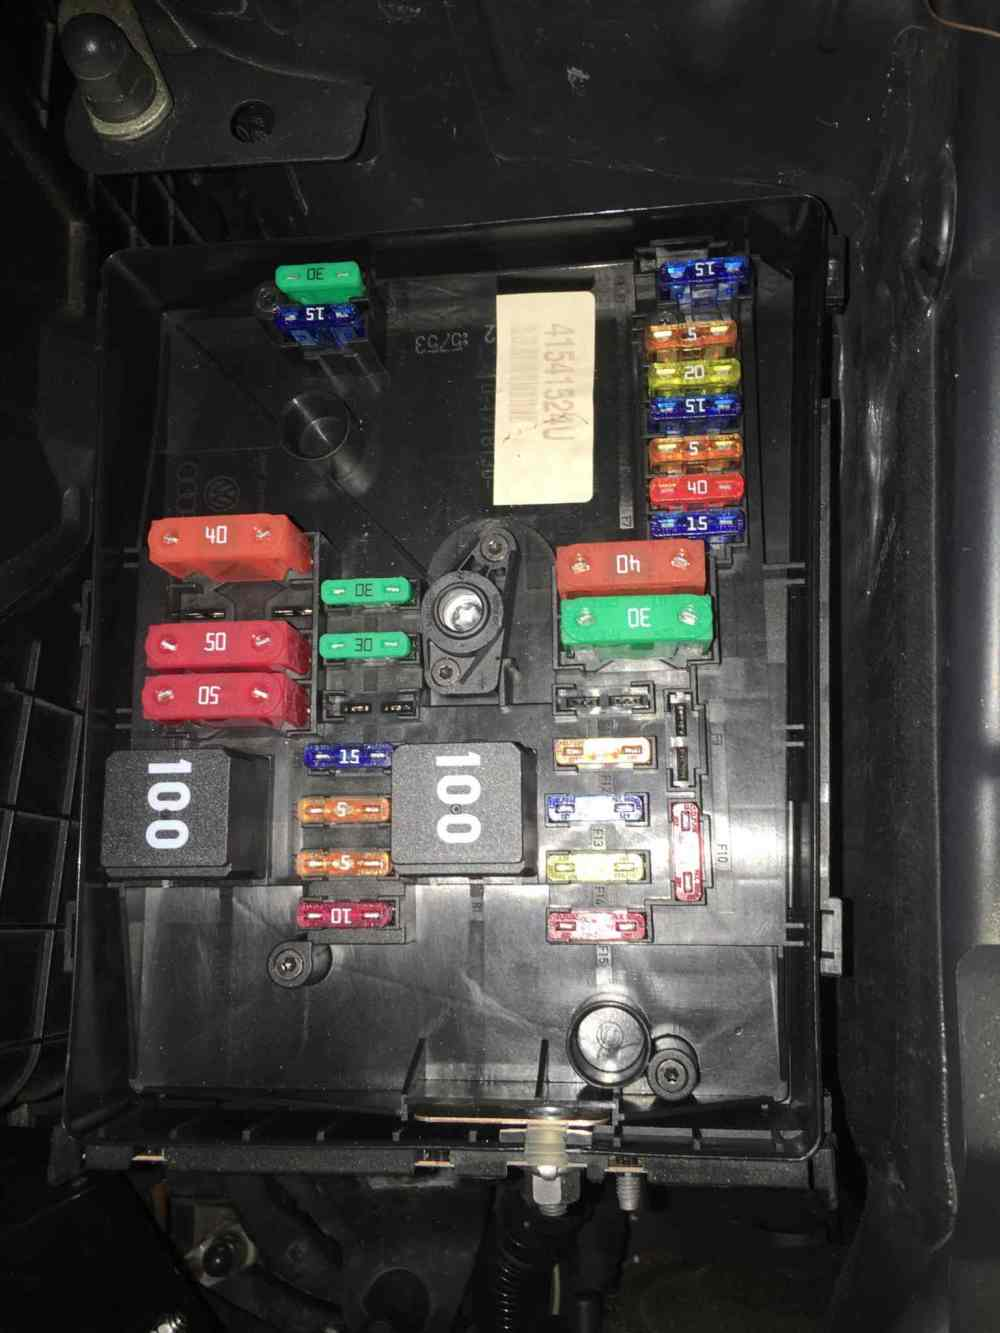 medium resolution of 2012 gti fuse diagram wiring diagram for you 2012 vw polo gti fuse box diagram 2012 volkswagen gti fuse box